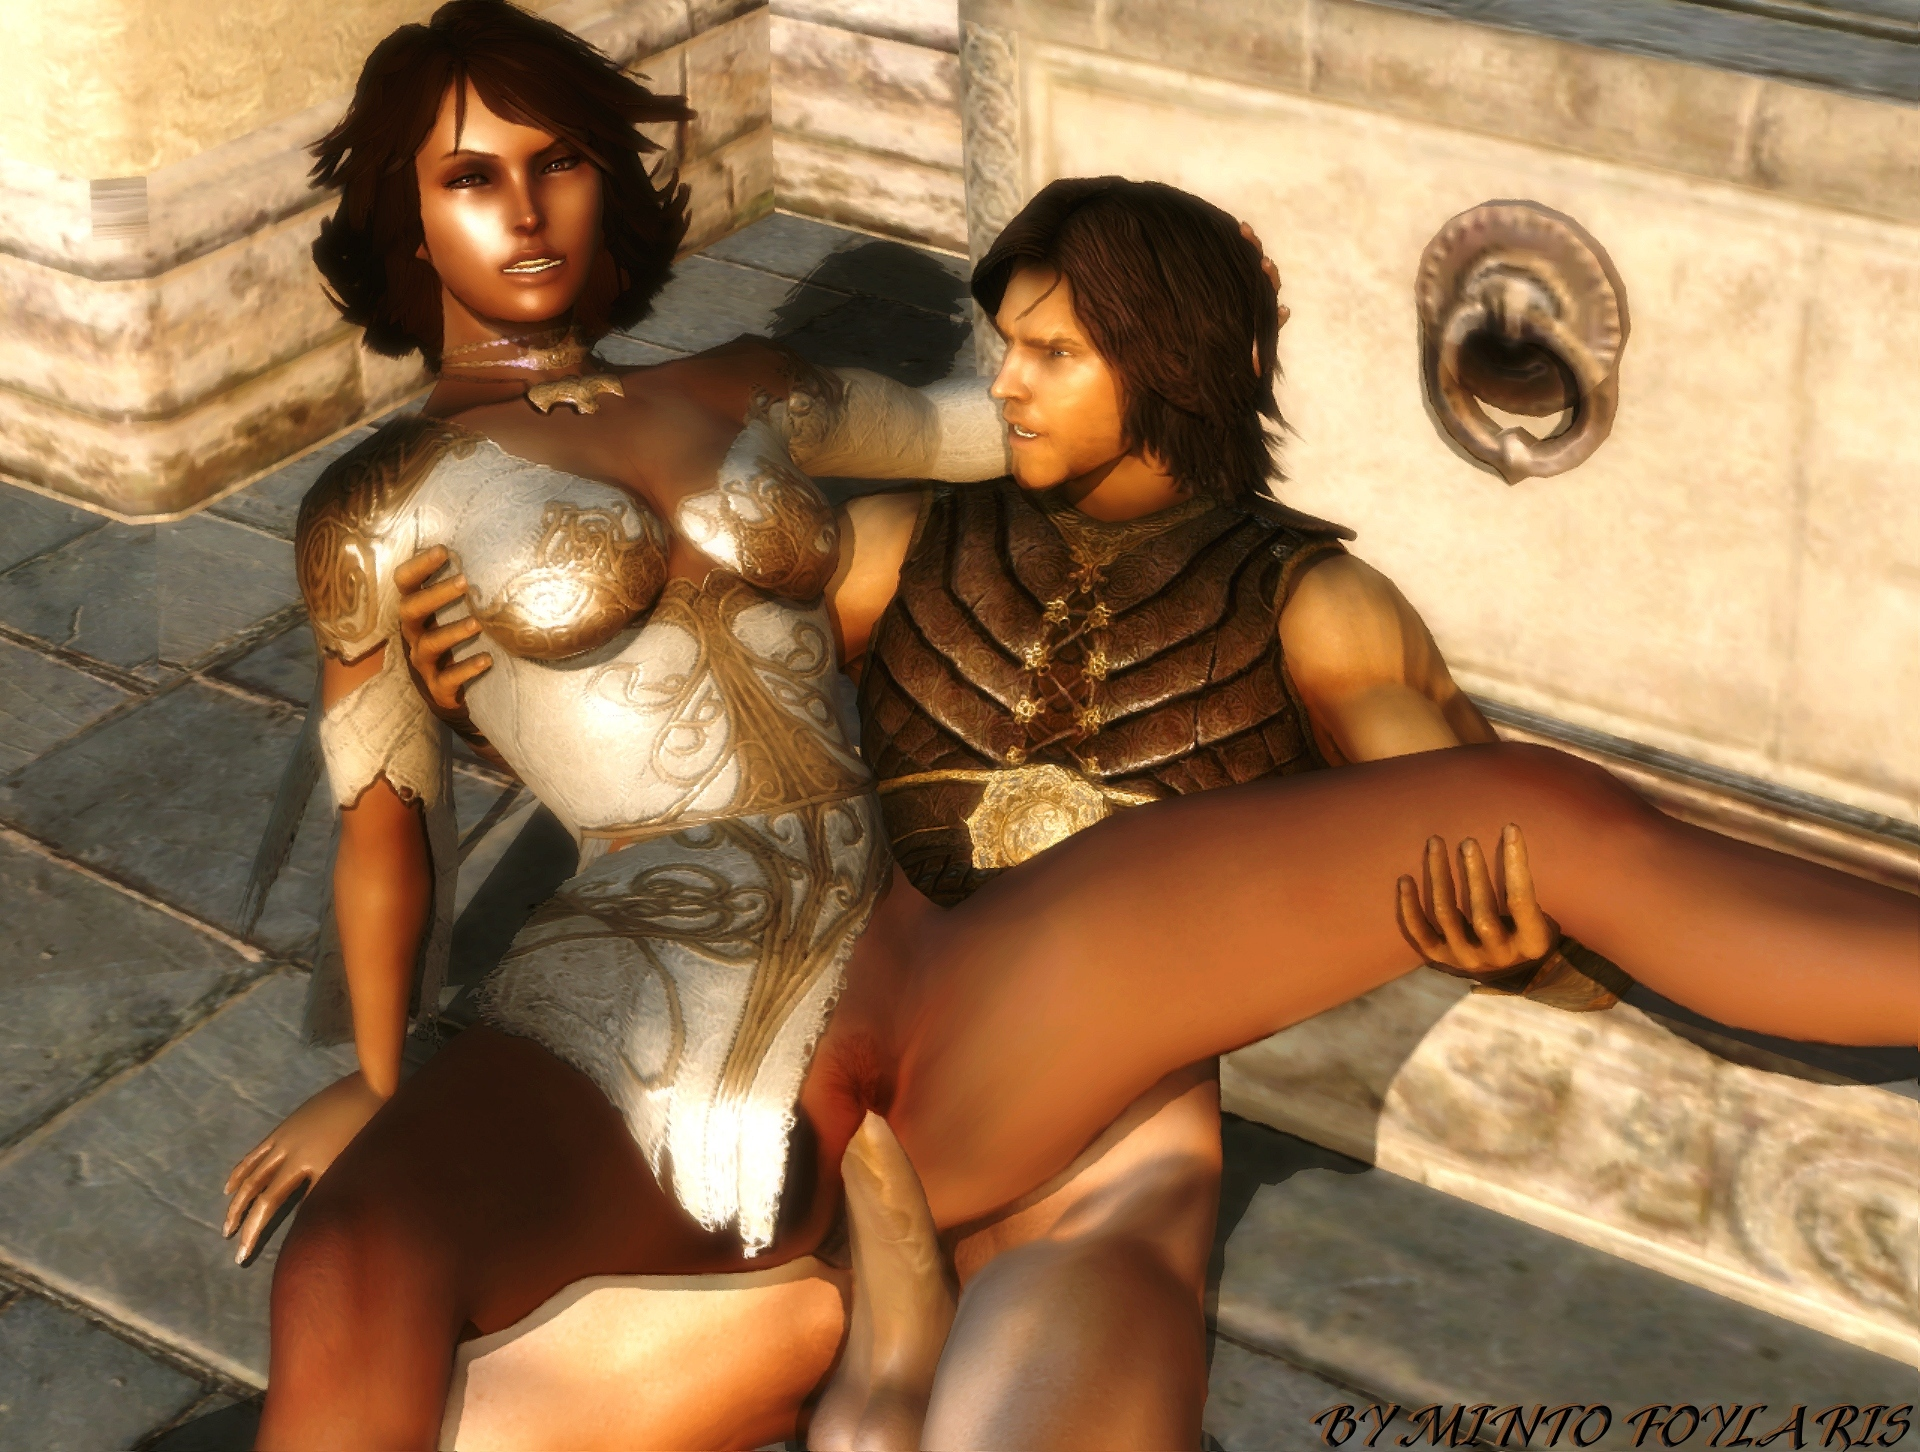 Talented Prince of persia porn opinion